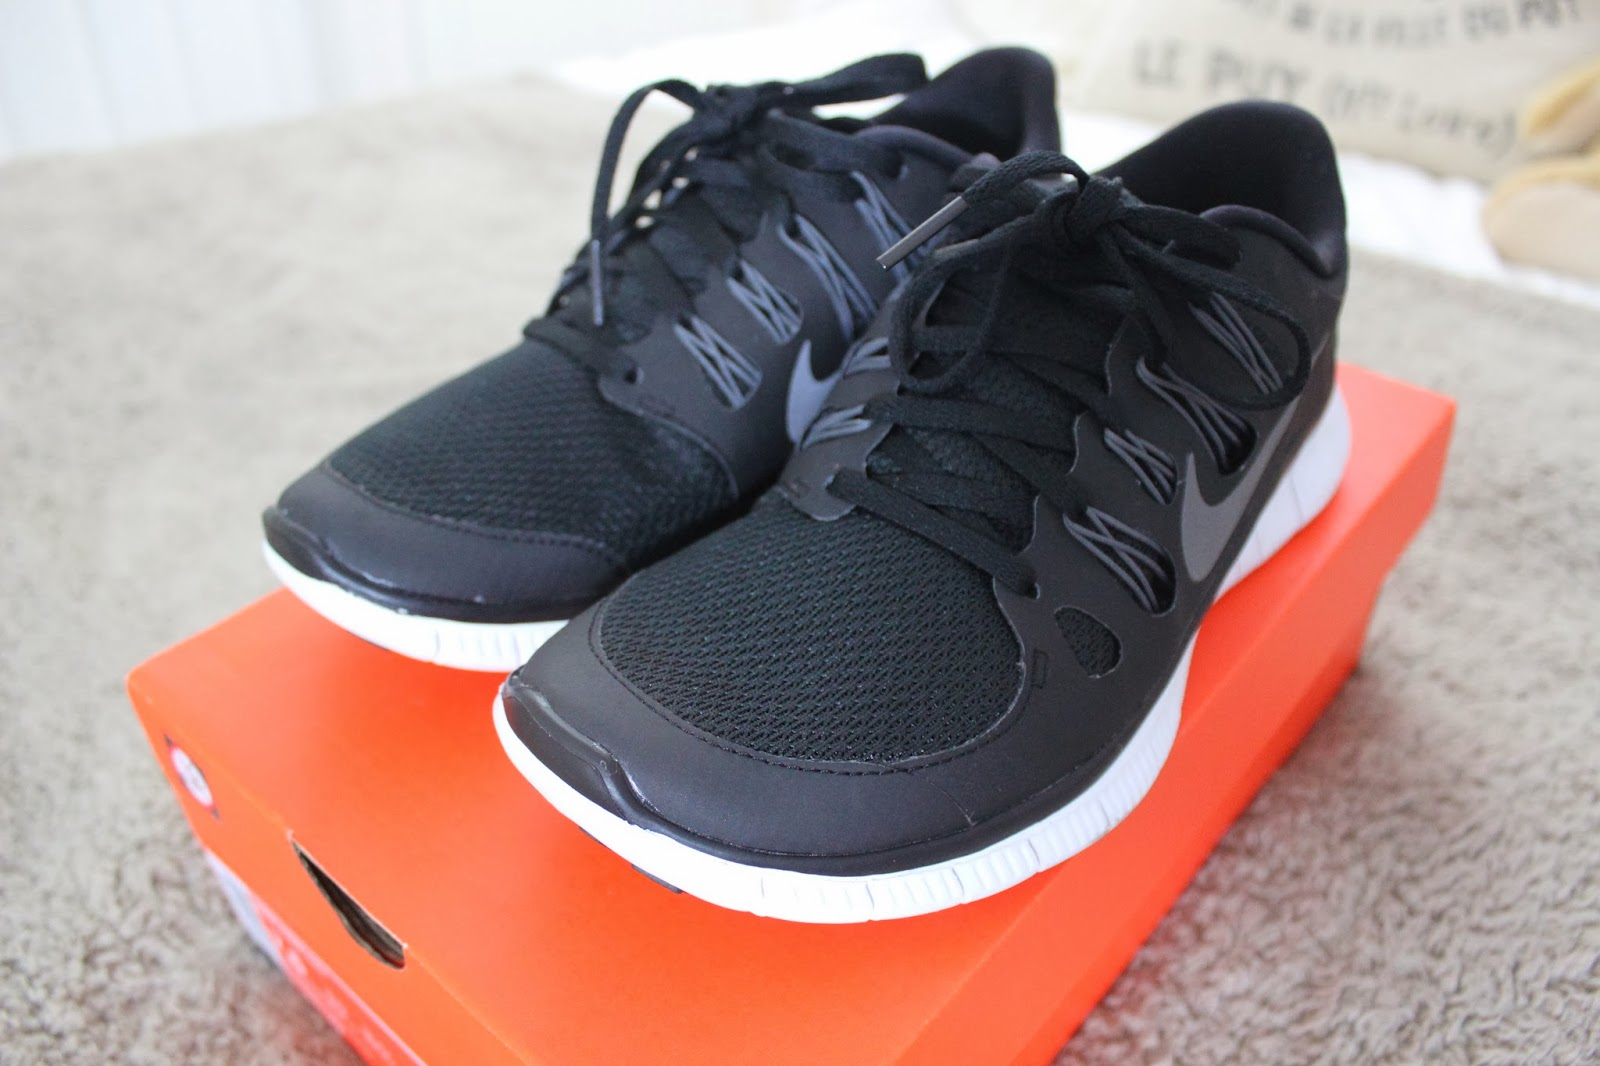 Nike Free Run 5.0 Trainers